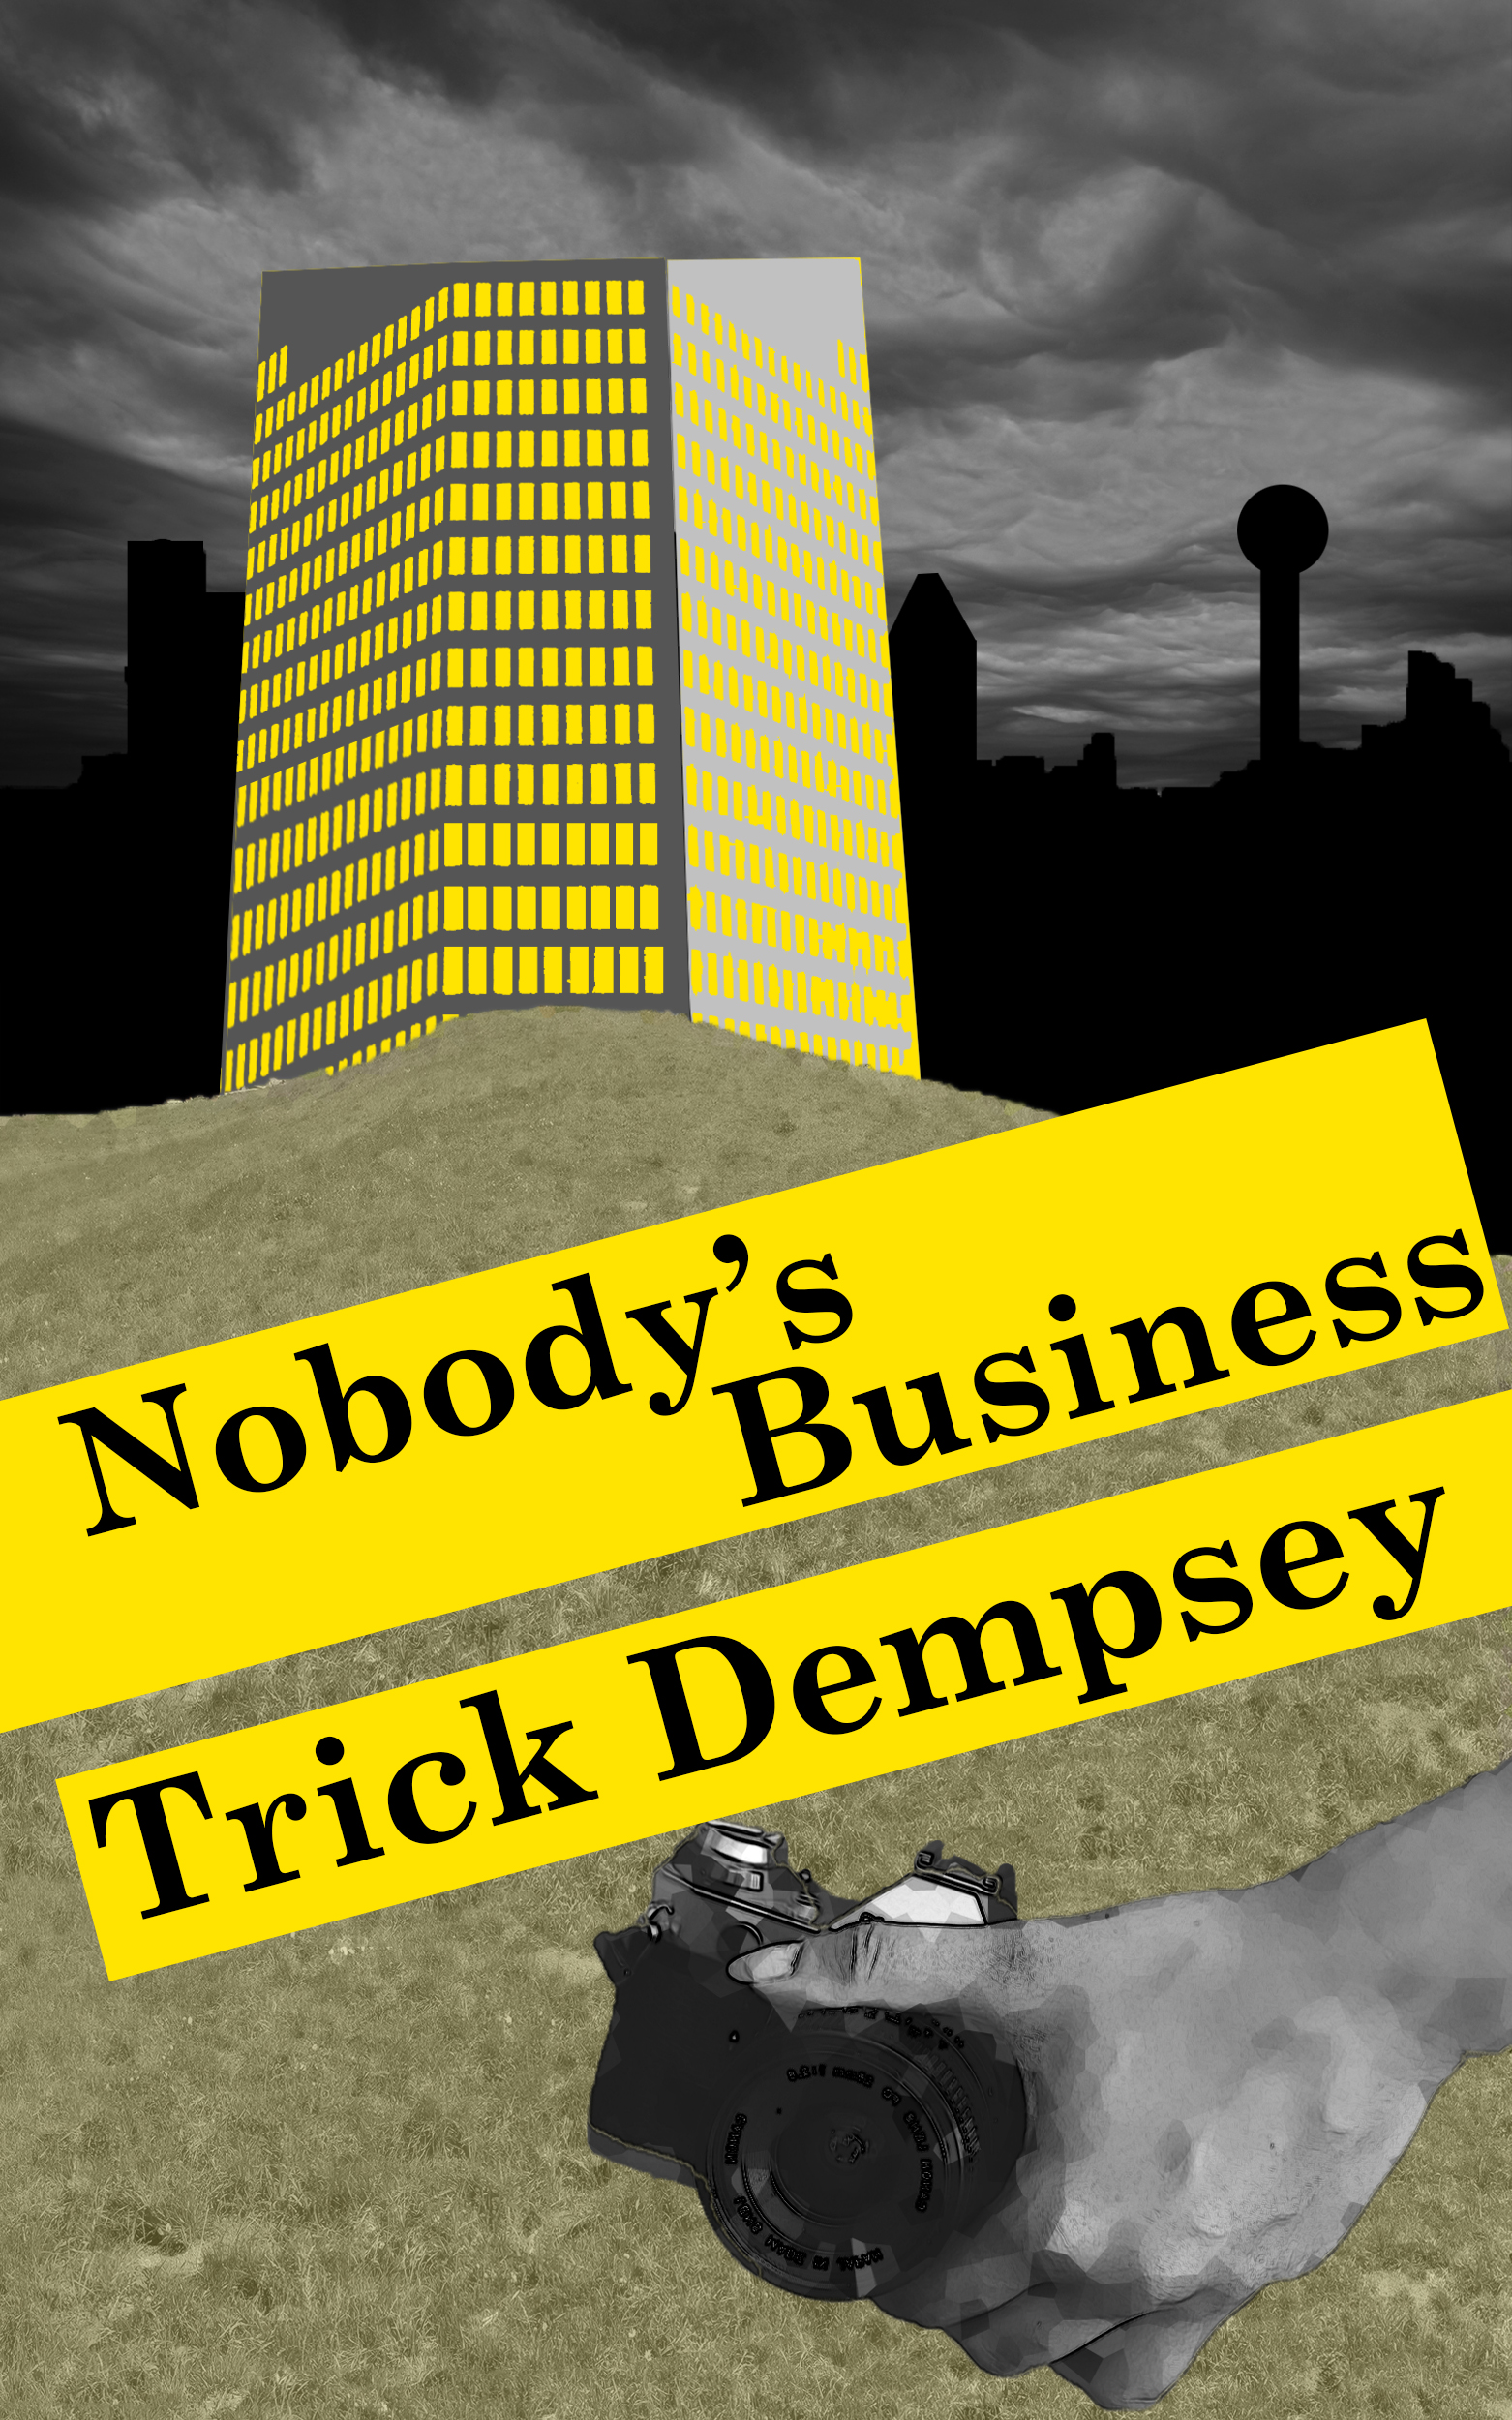 Trick Dempsey's first novel!